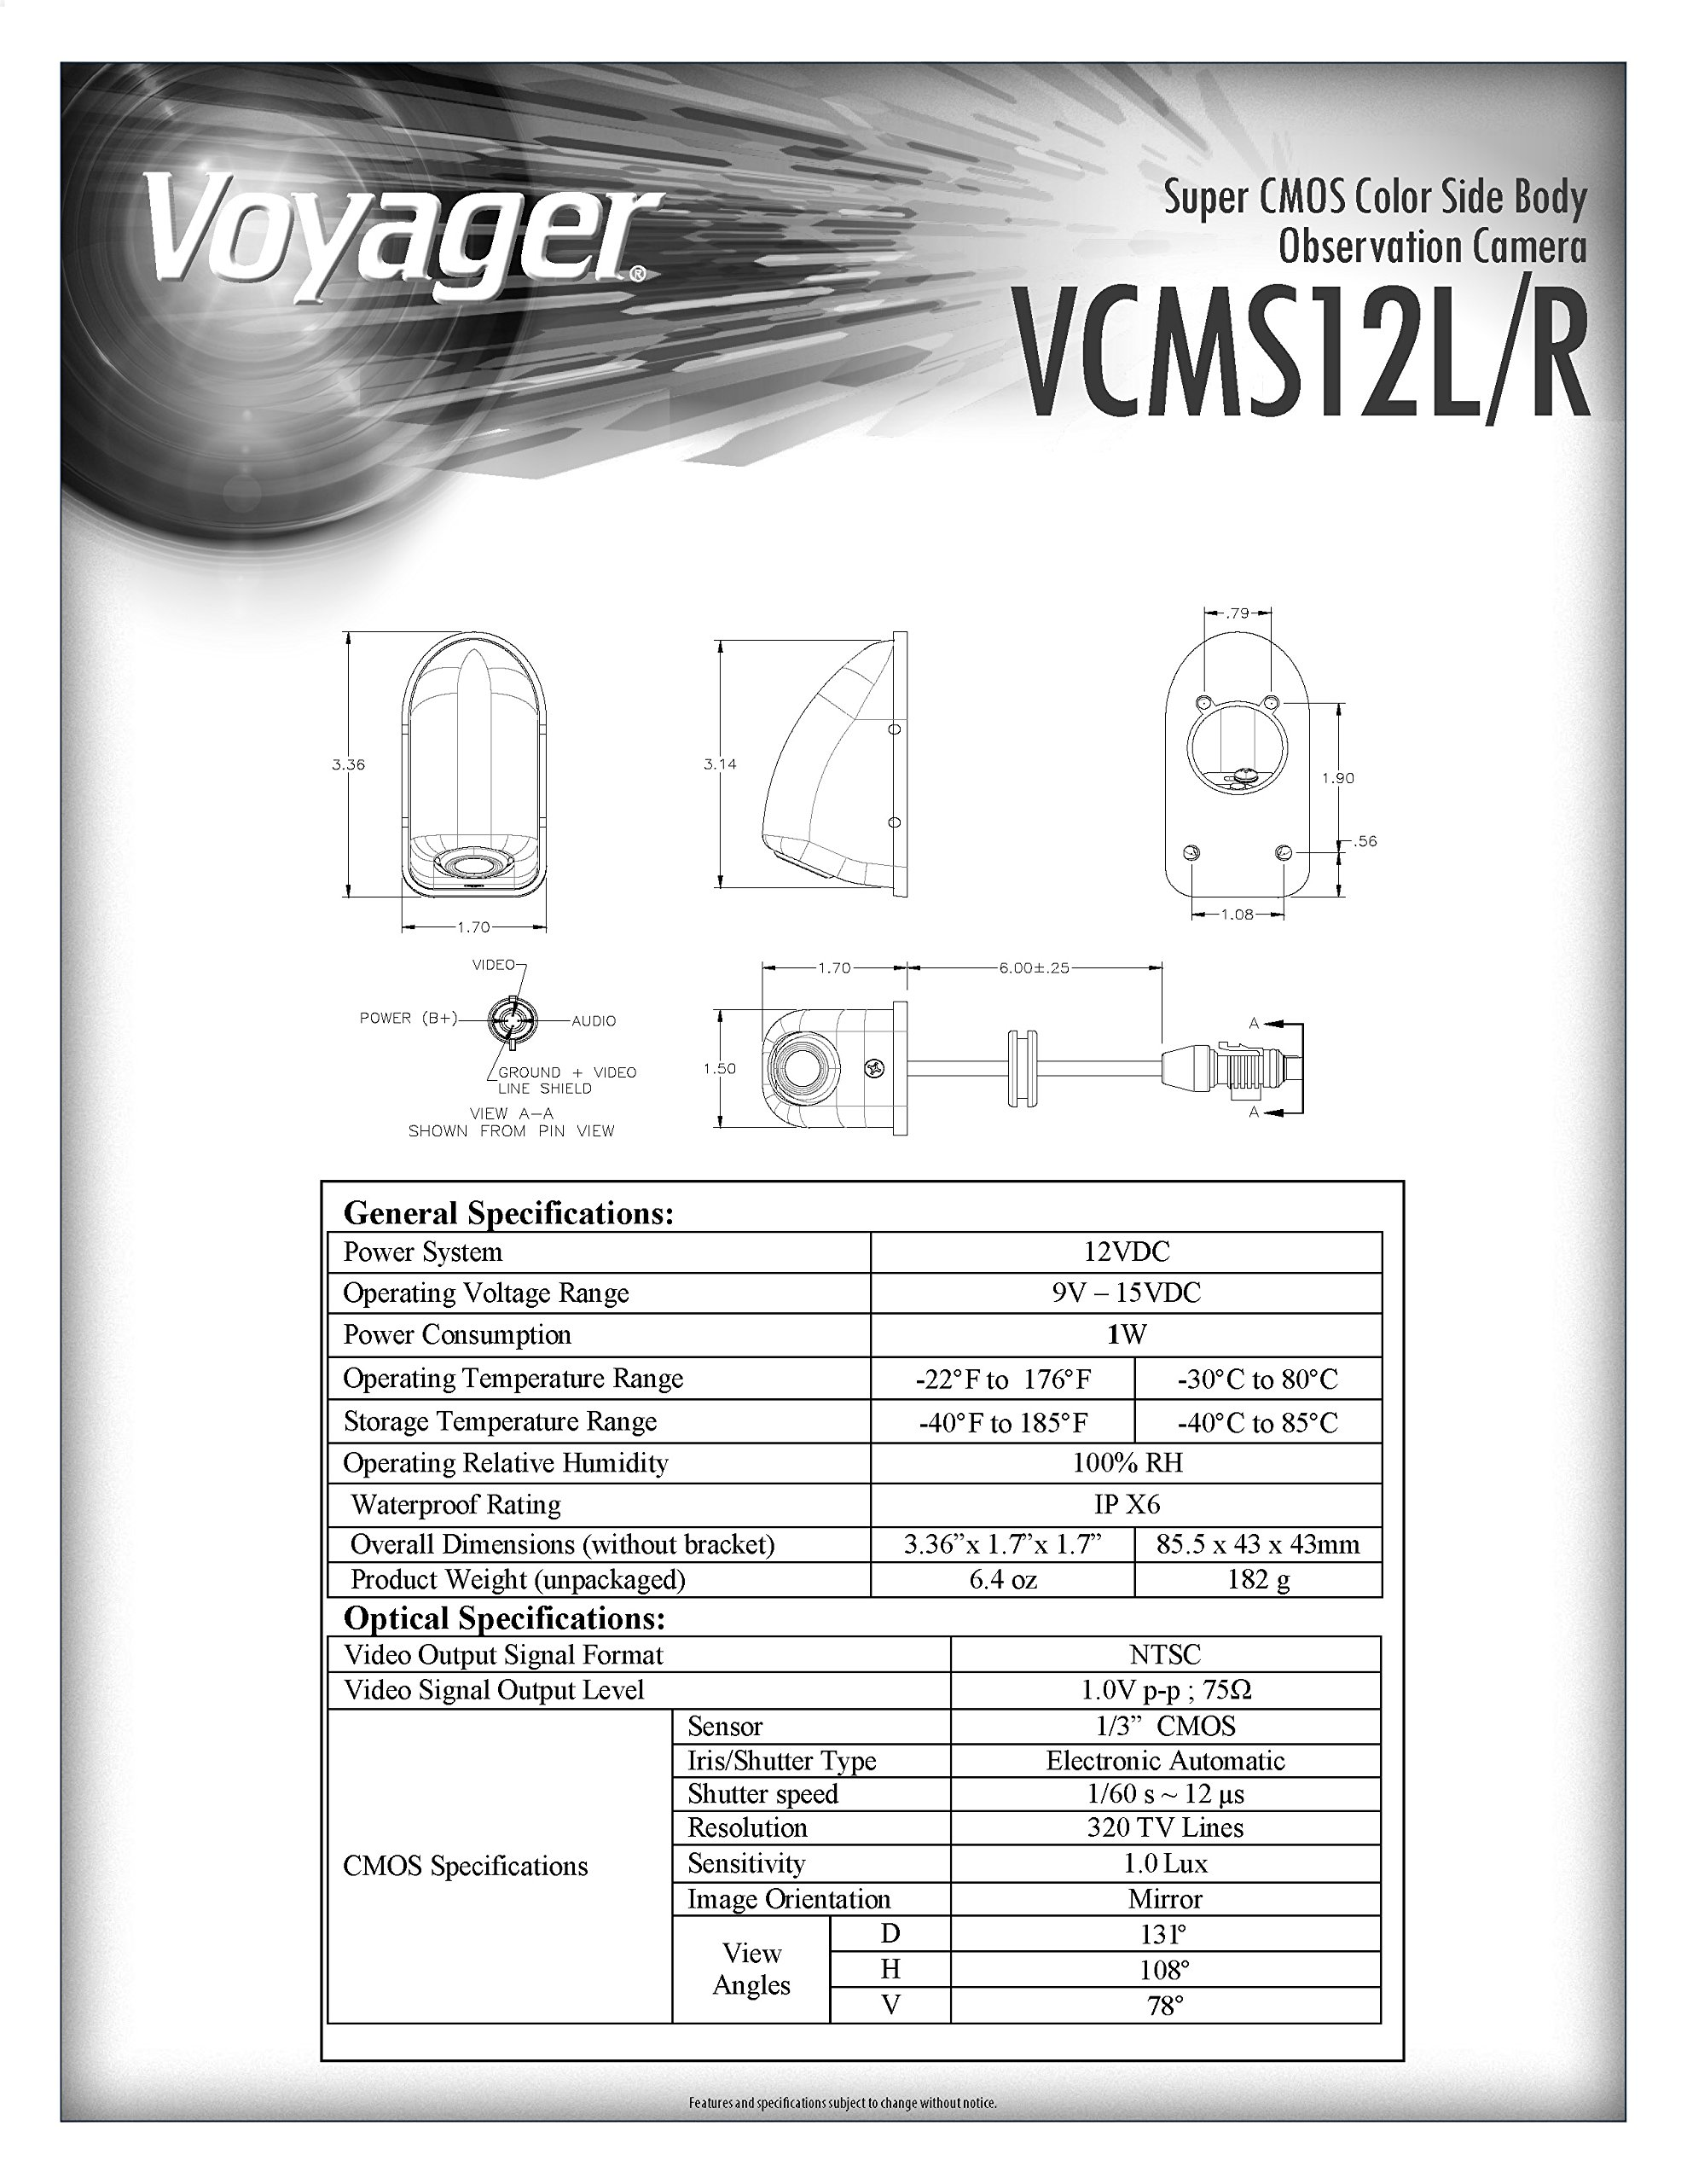 VOYAGER VCMS12LWTR Model VCMS12 Color Left Side CMOS Camera, White Housing, Replaces VCMS36 L/R/T and VCCSID L/R